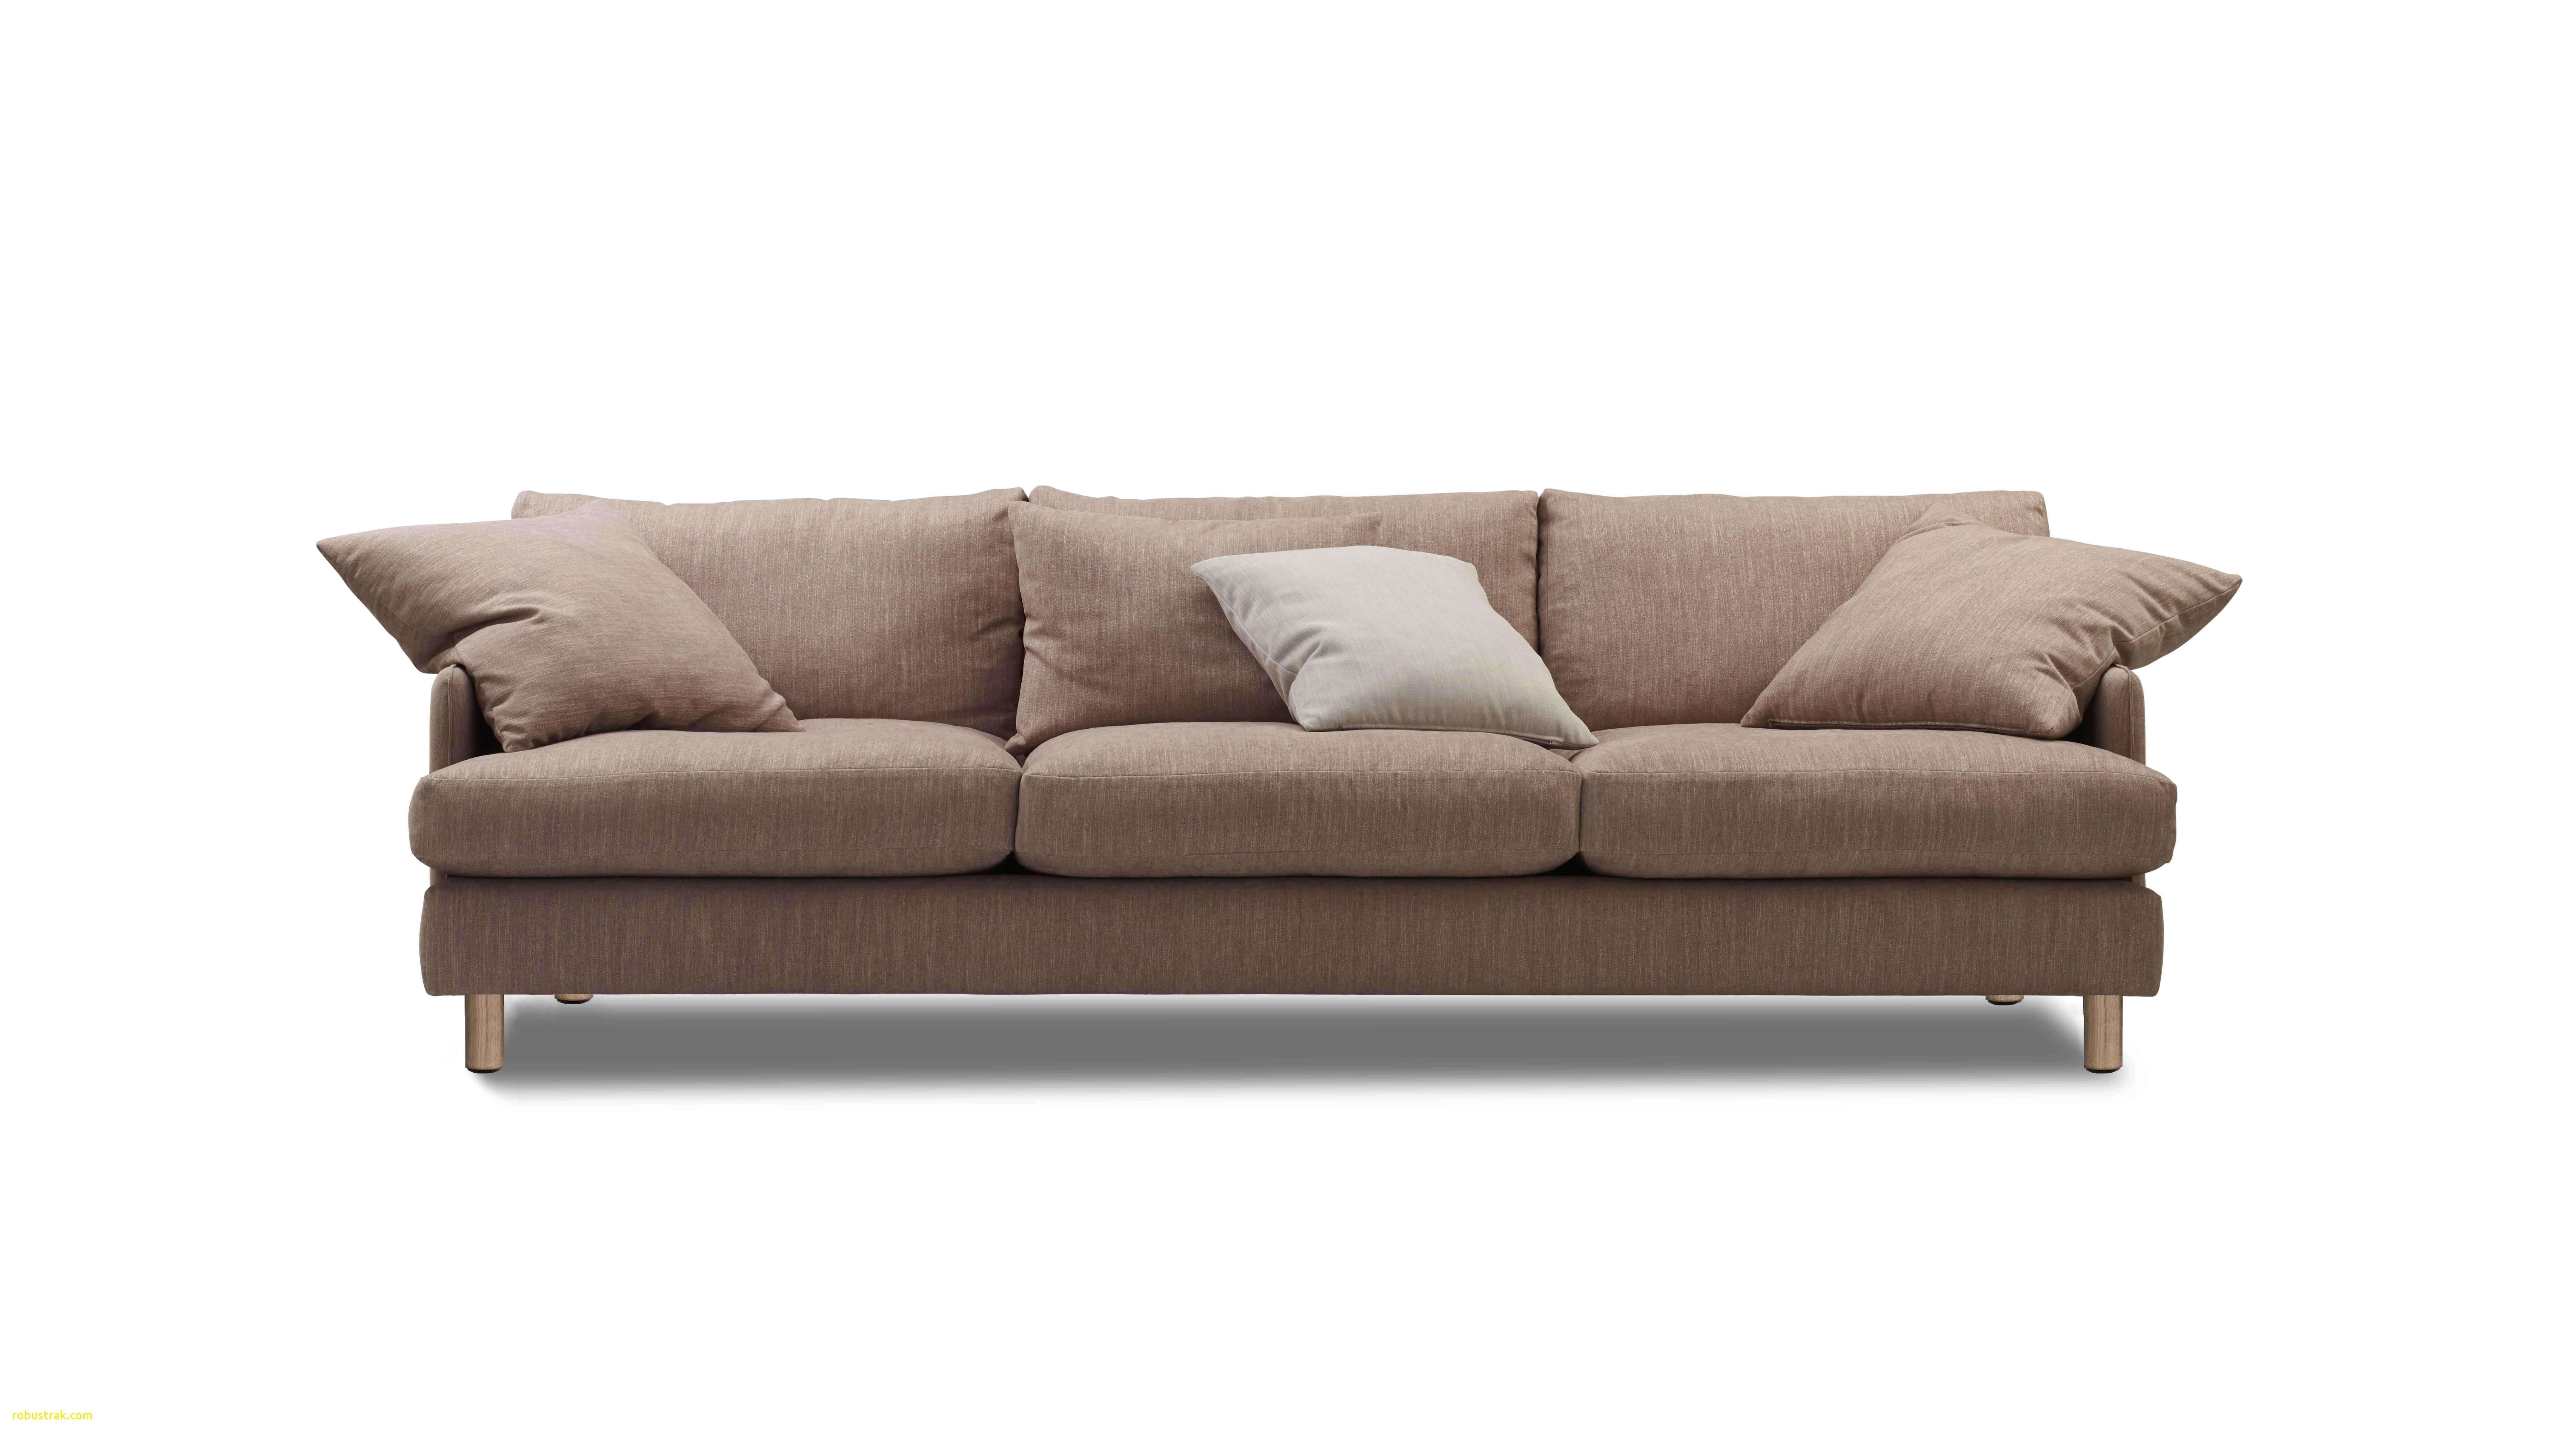 Wooden sofa Bed with Storage Beautiful Furniture Couch Bed